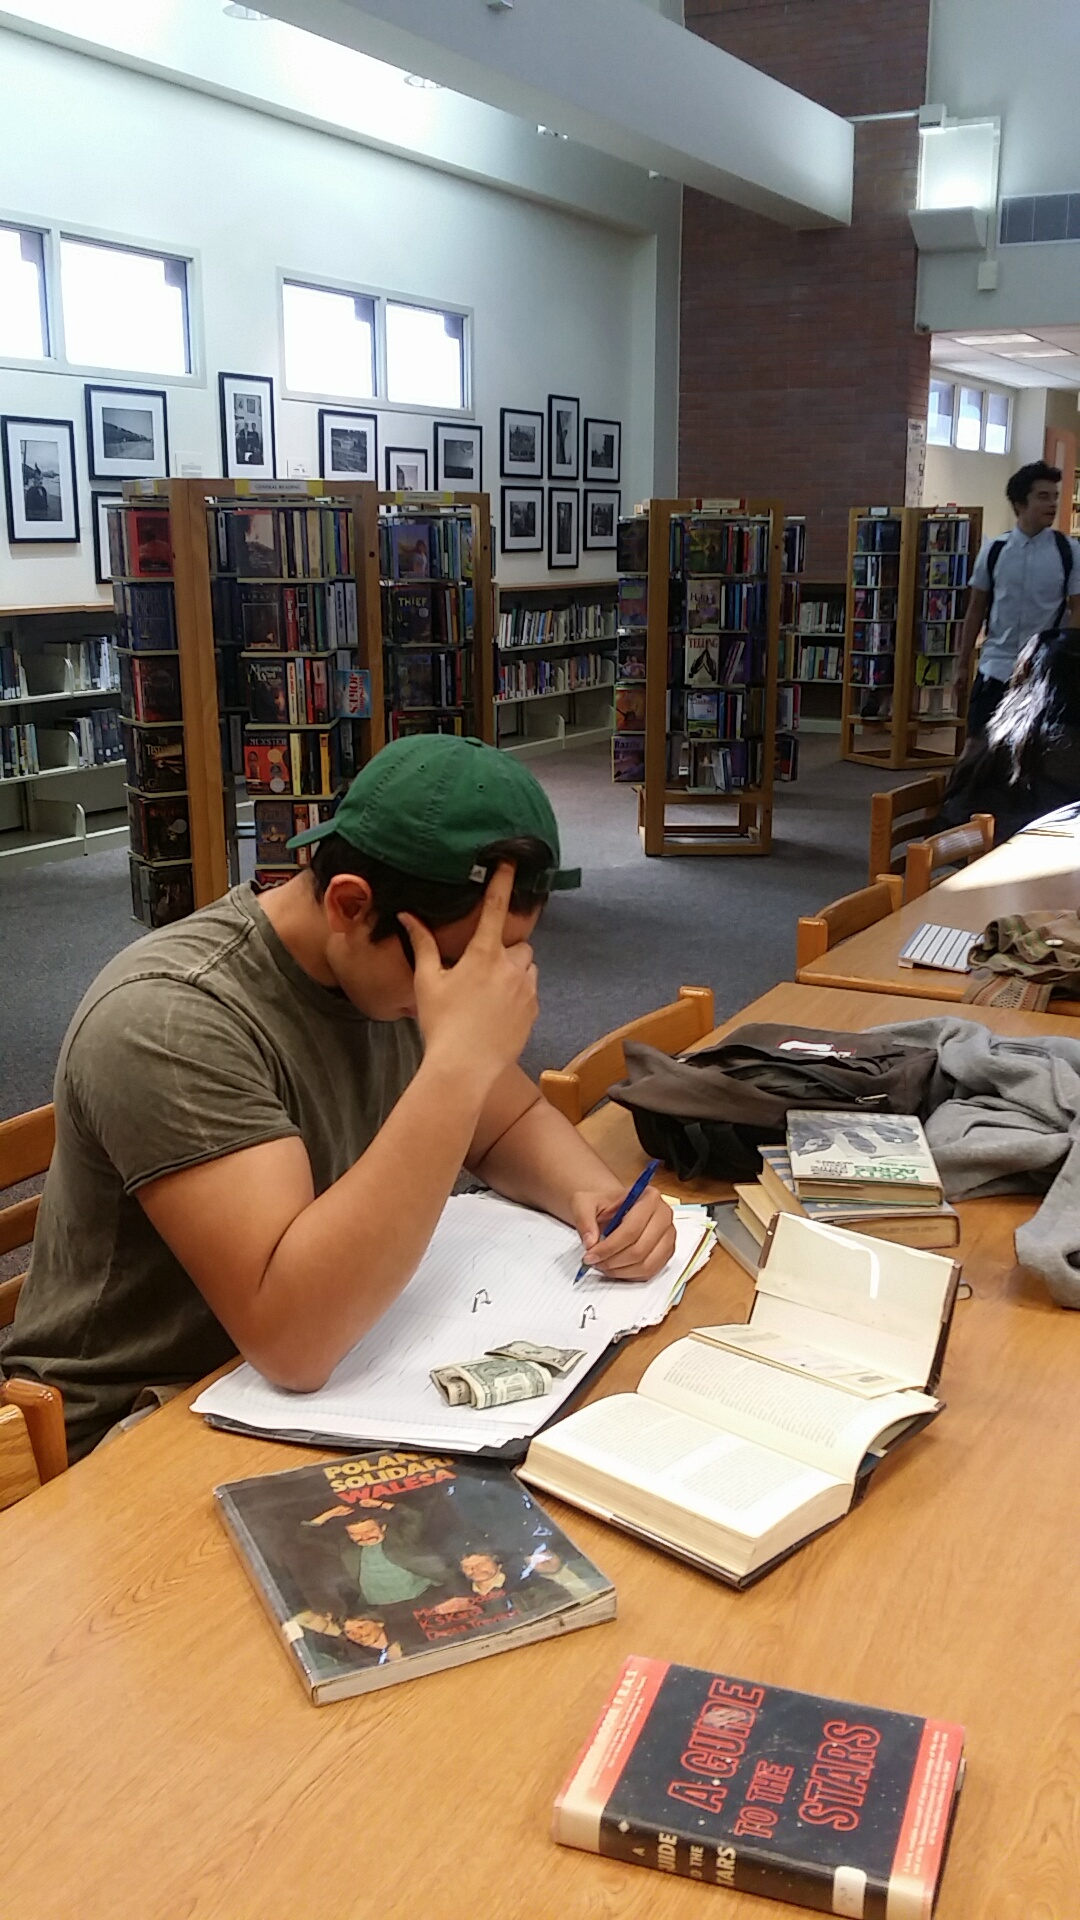 Students prone to high stress levels